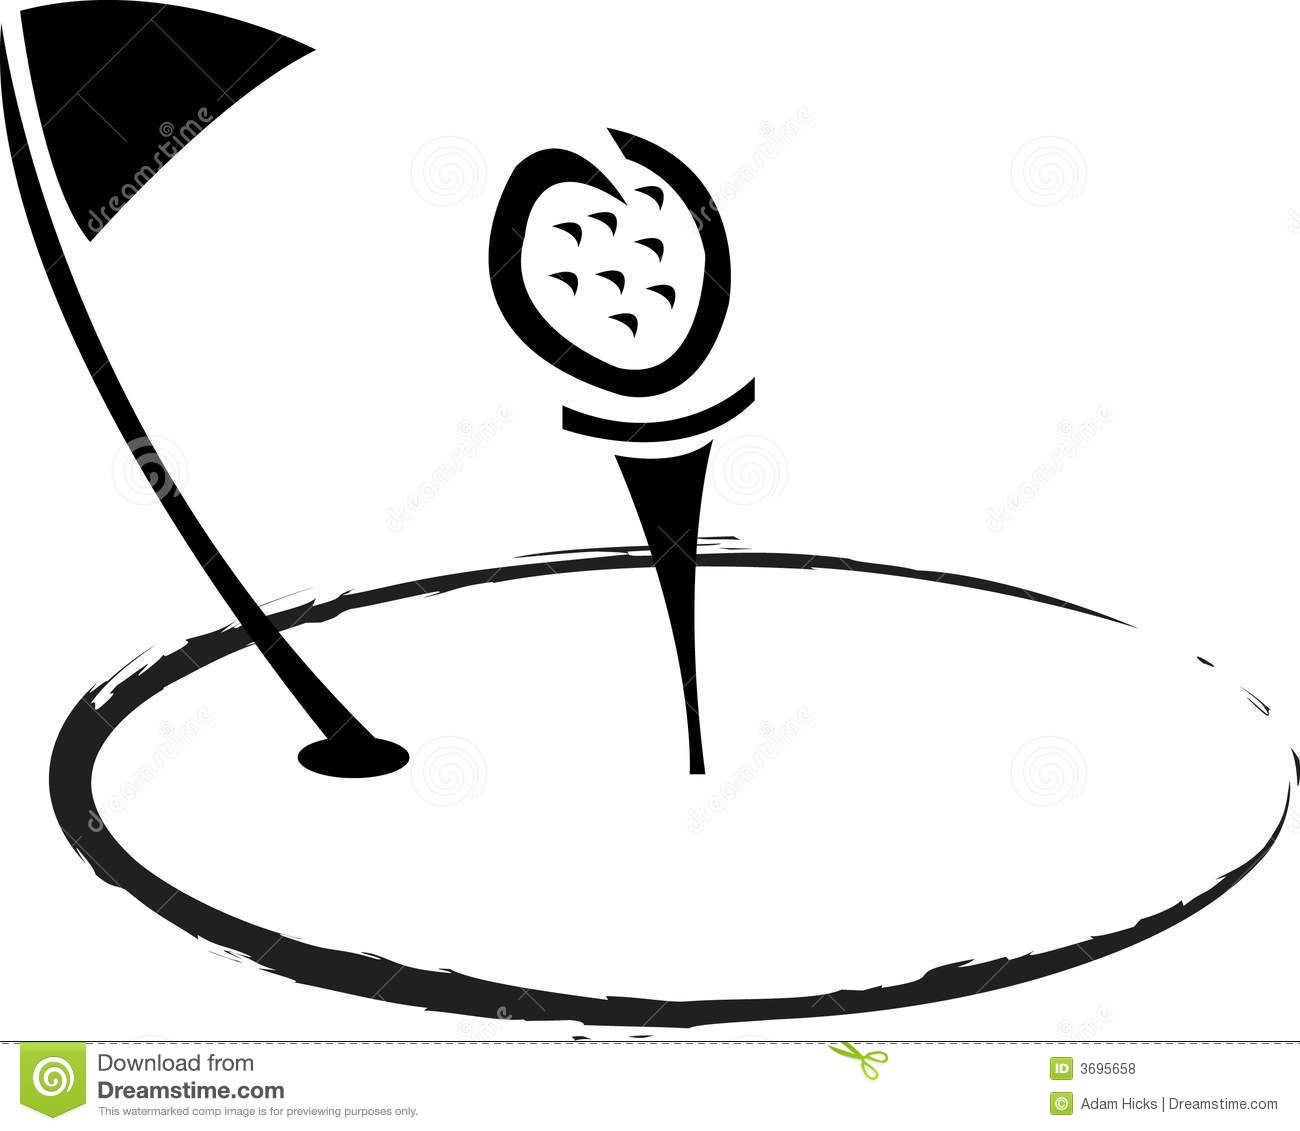 Black and white clipart golf jpg library 45+ Golf Clip Art Black And White | ClipartLook jpg library